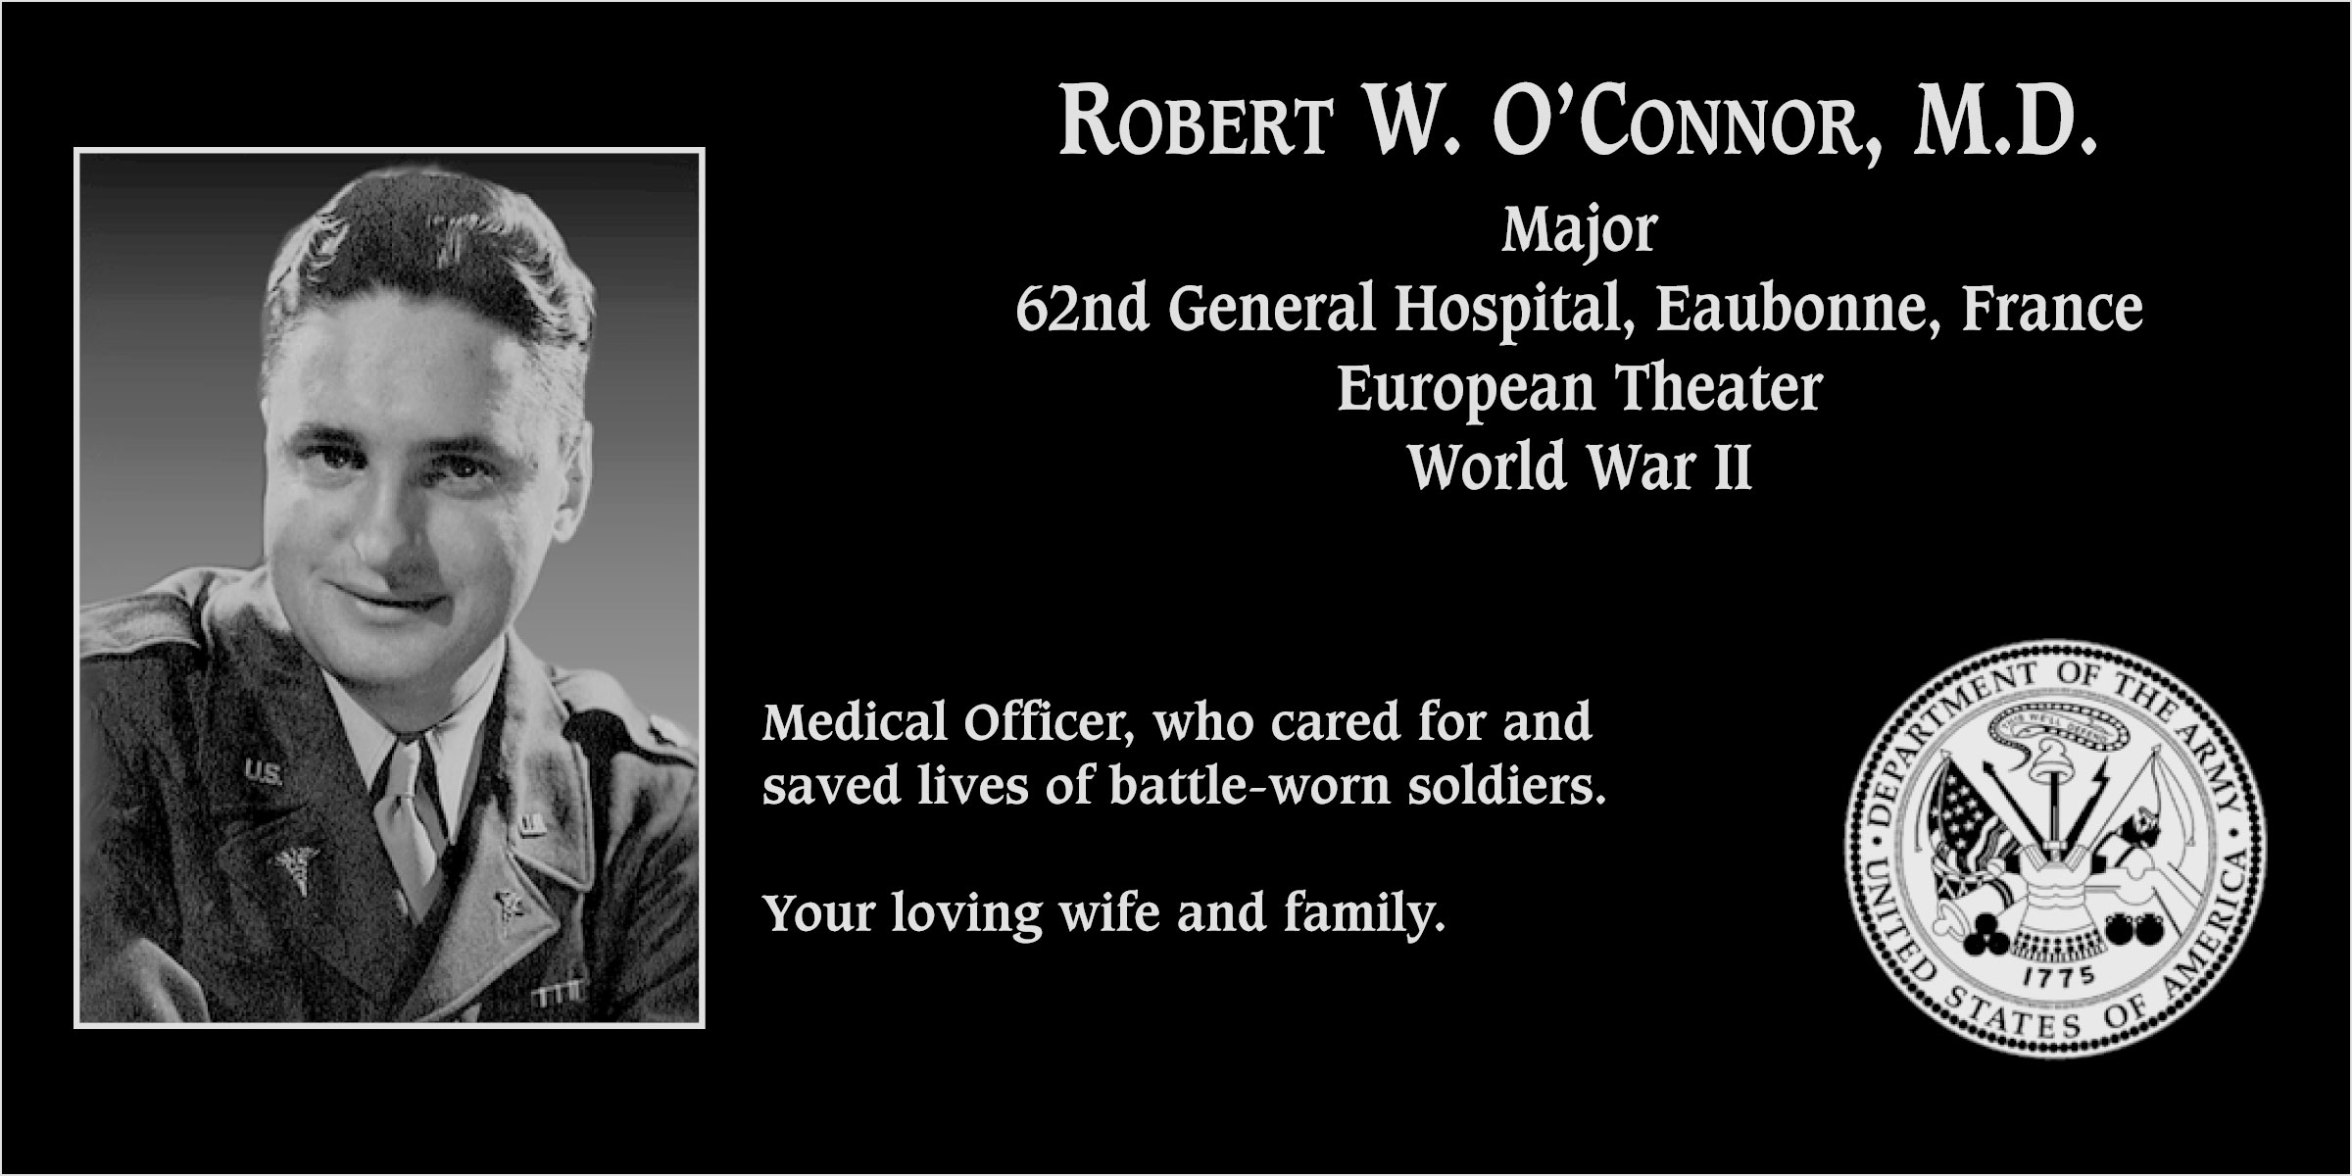 Robert W. O'Connor, M.D.